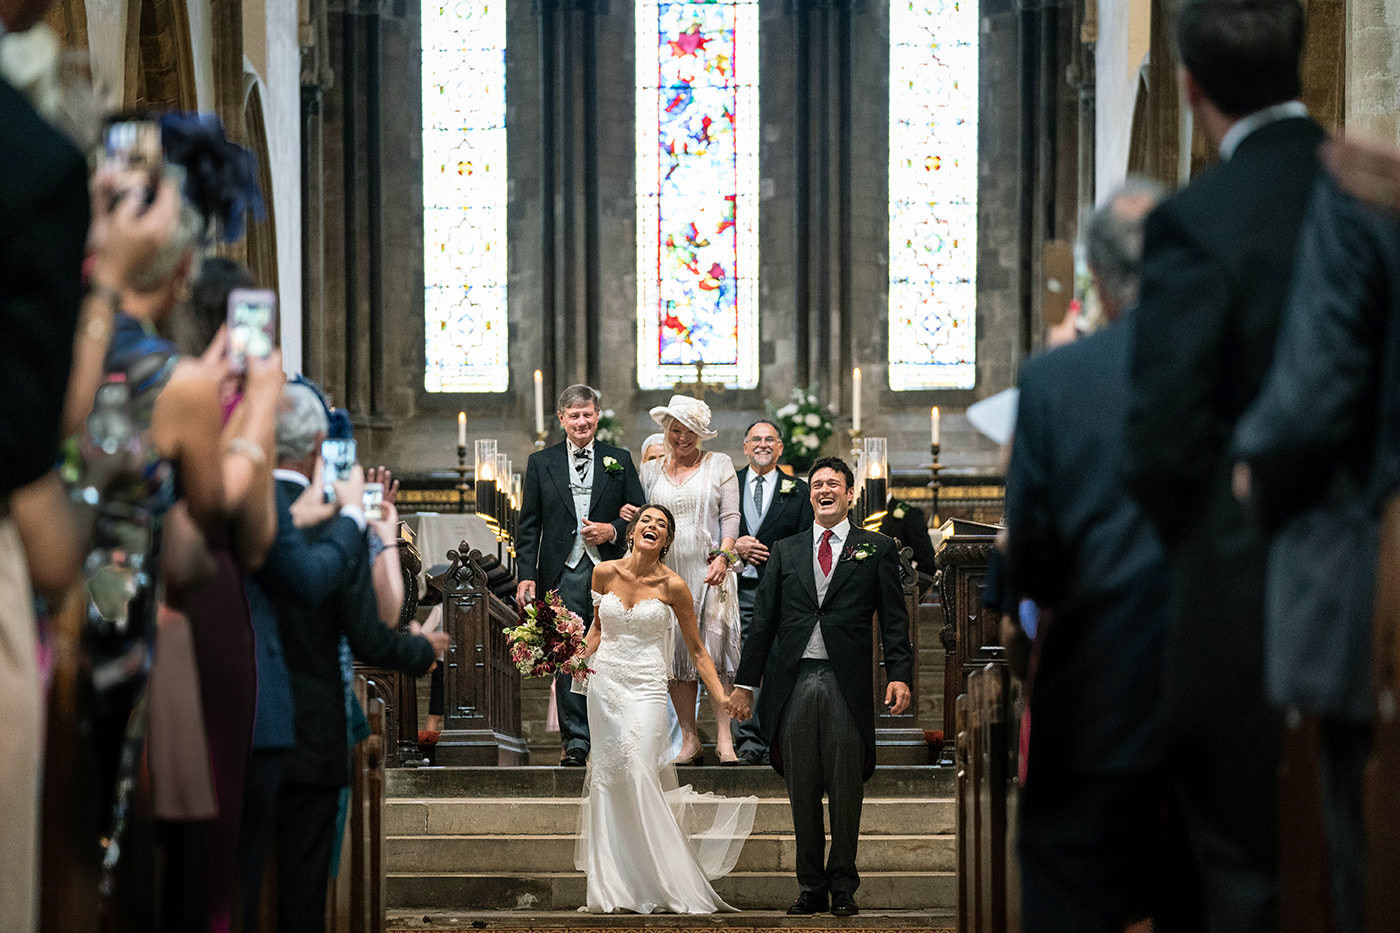 Newlyweds Walking Down the Aisle at Wimborn Minster